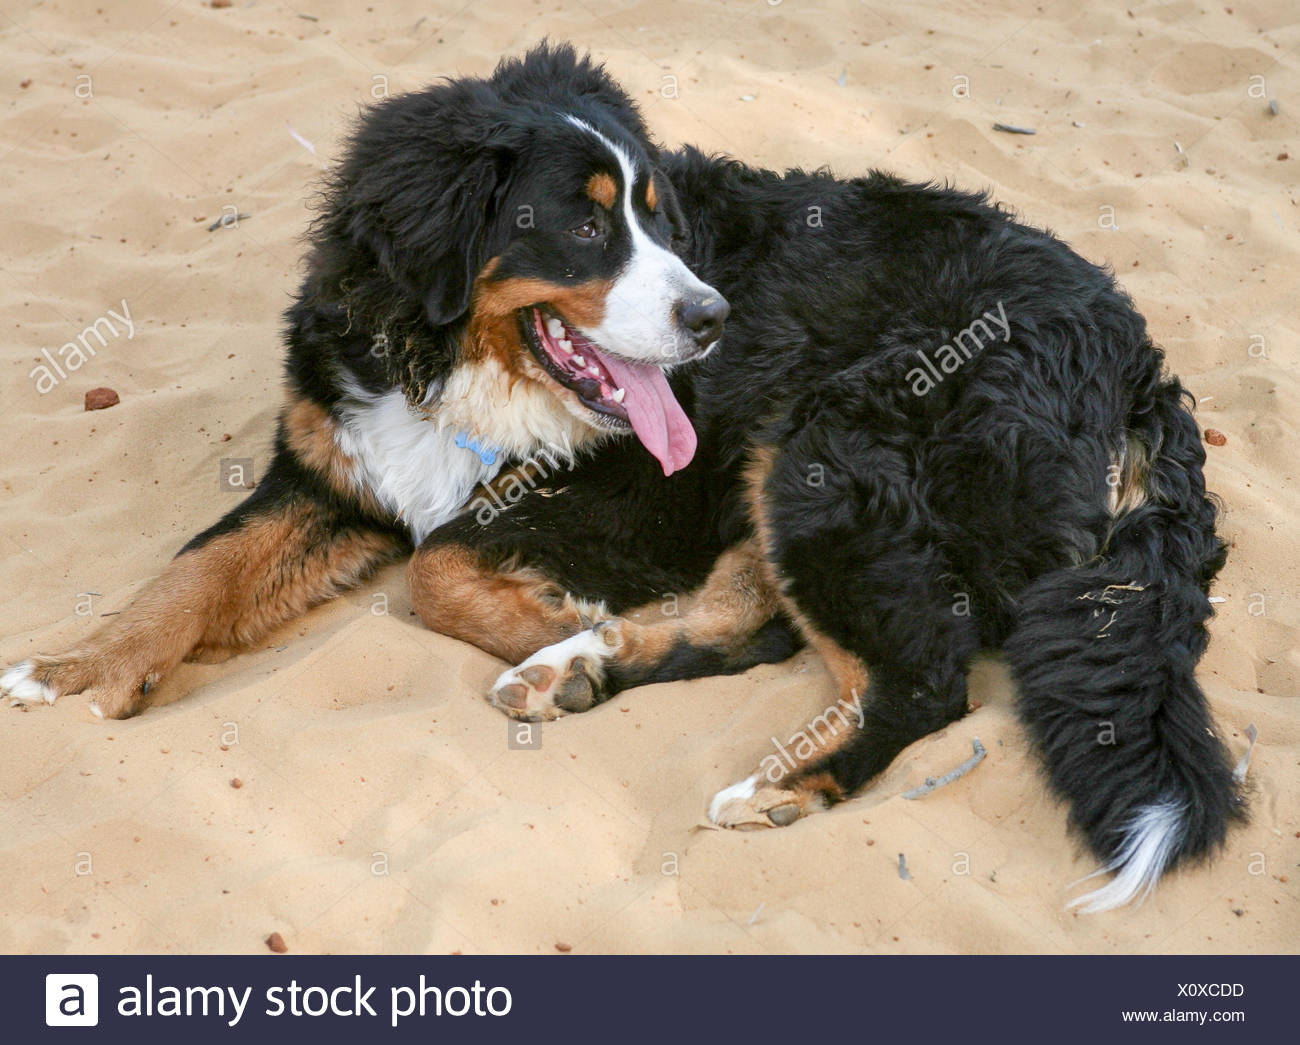 The Bernese Mountain Dog, called in German the Berner Sennenhund, is a large-sized breed of dog, one of the four breeds of Senne - Stock Image